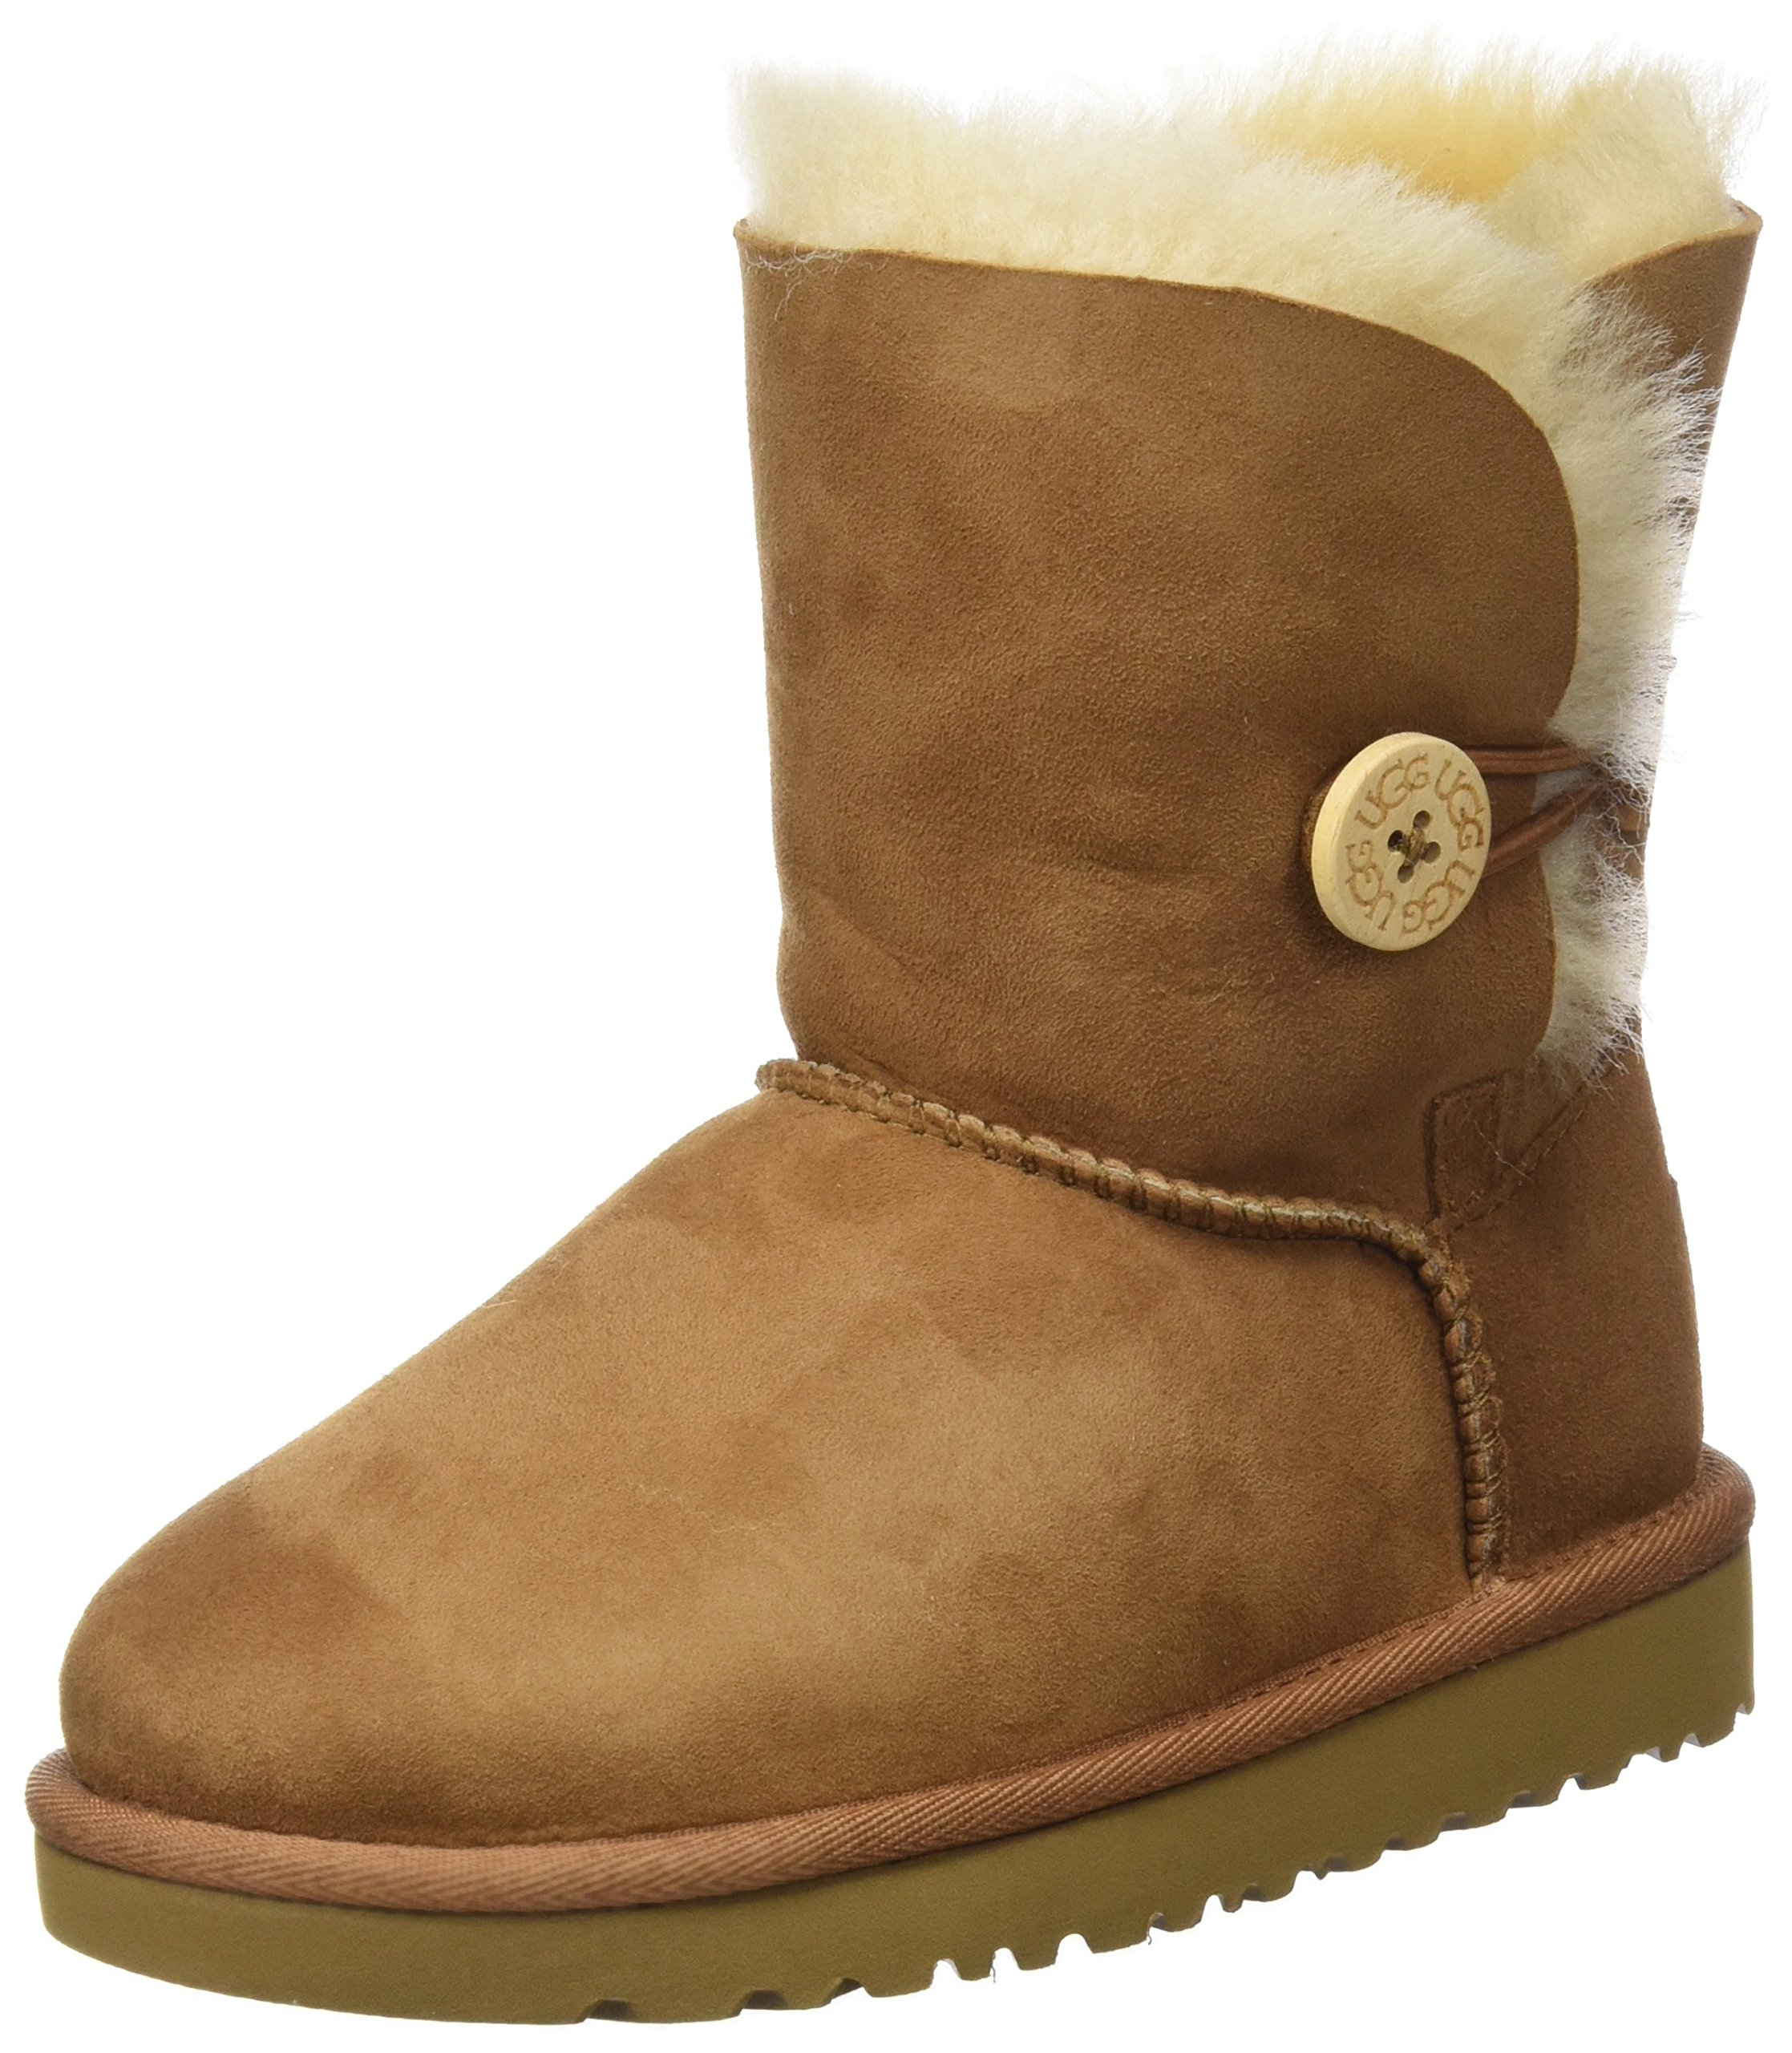 UGG Girl's Bailey Button Boot, Chestnut, 13 Little Kid M by UGG